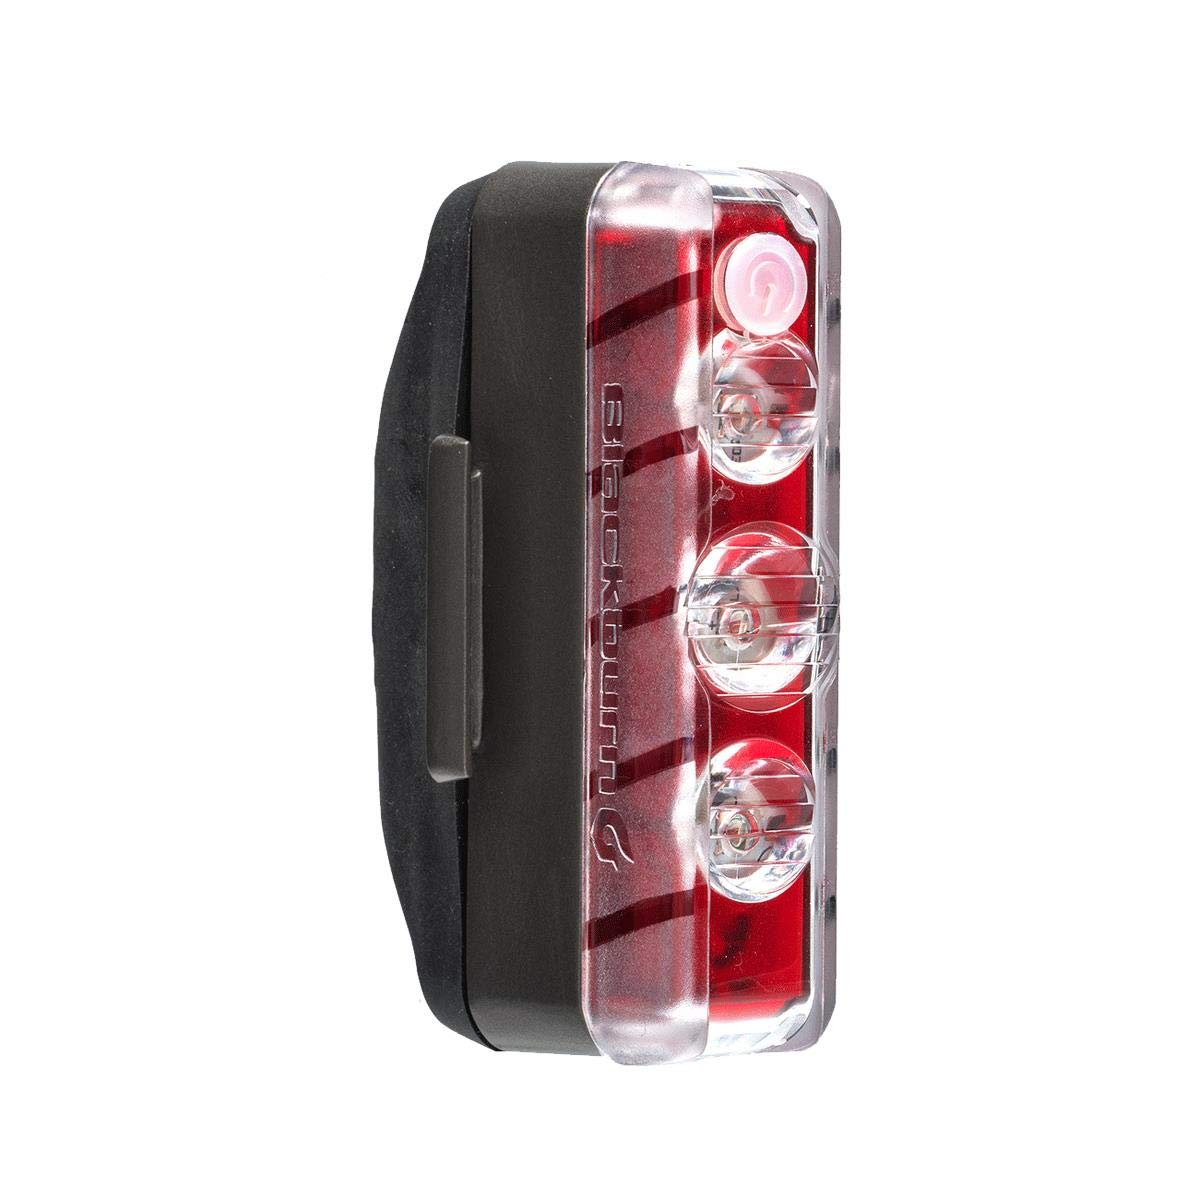 Blackburn Dayblazer 125 Tail Light Black, One Size